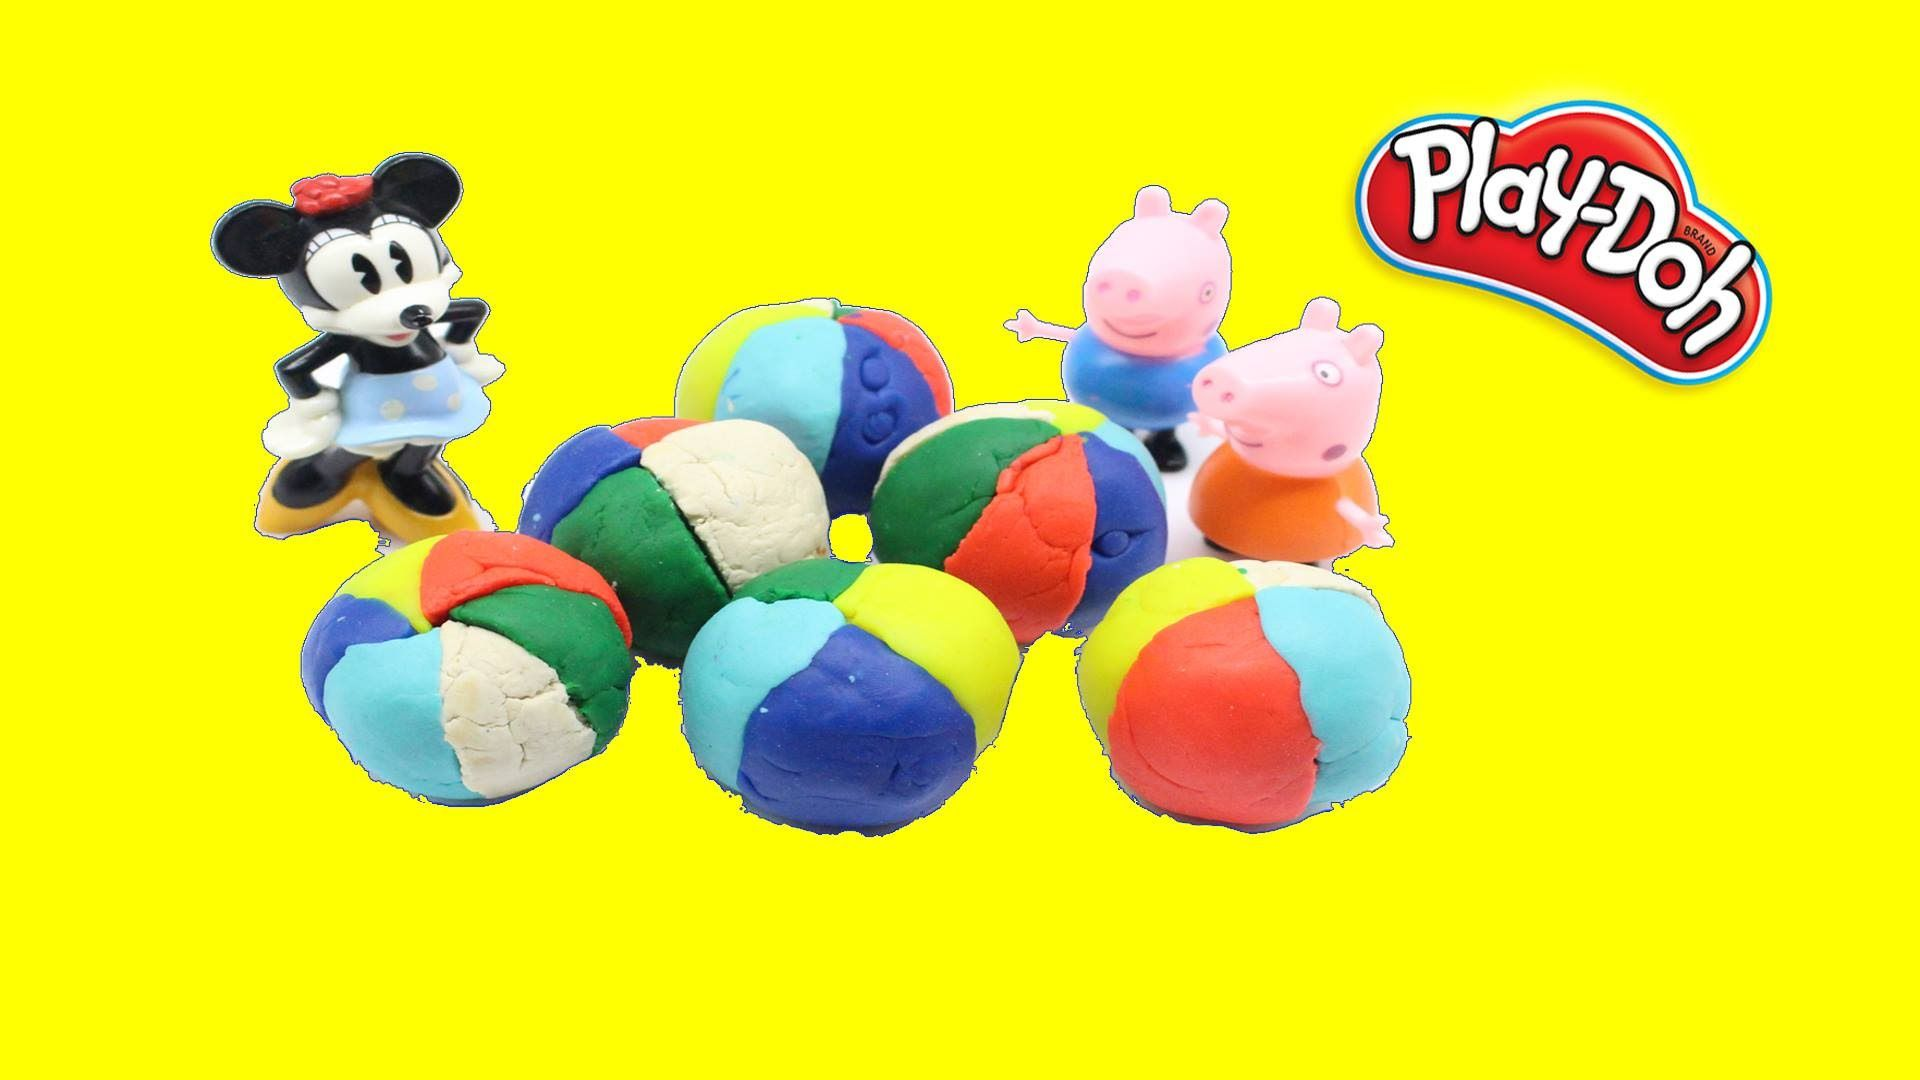 Play Dough Balls with Peppa pig Toys Fun for Kids